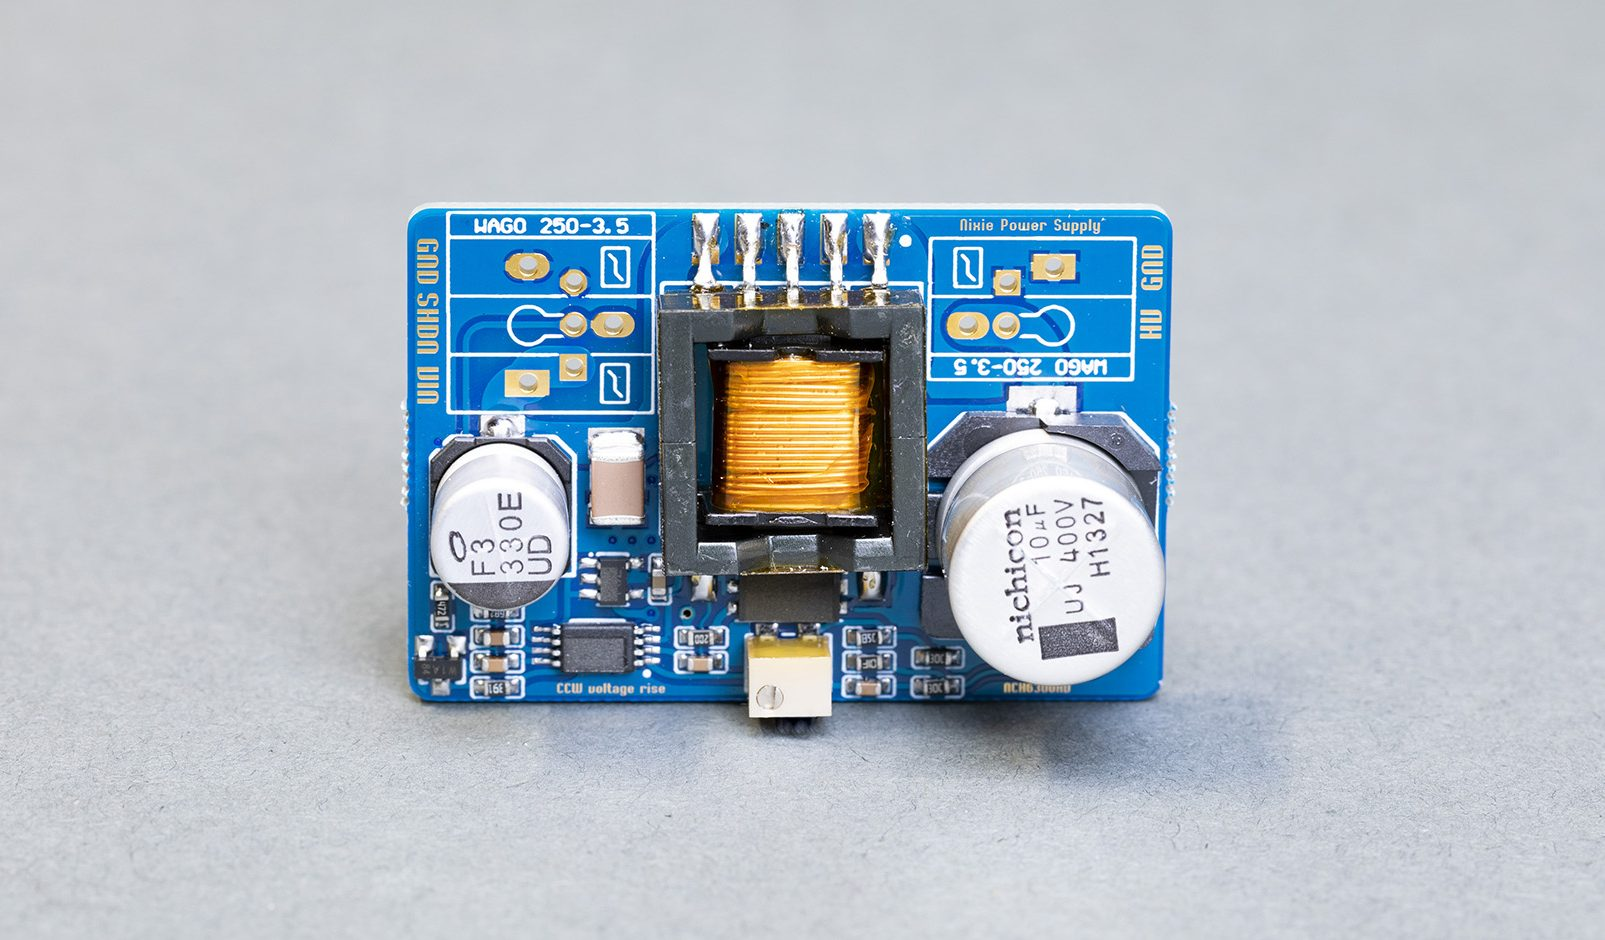 NCH6300HV high voltage DC-DC power booster for nixie displays